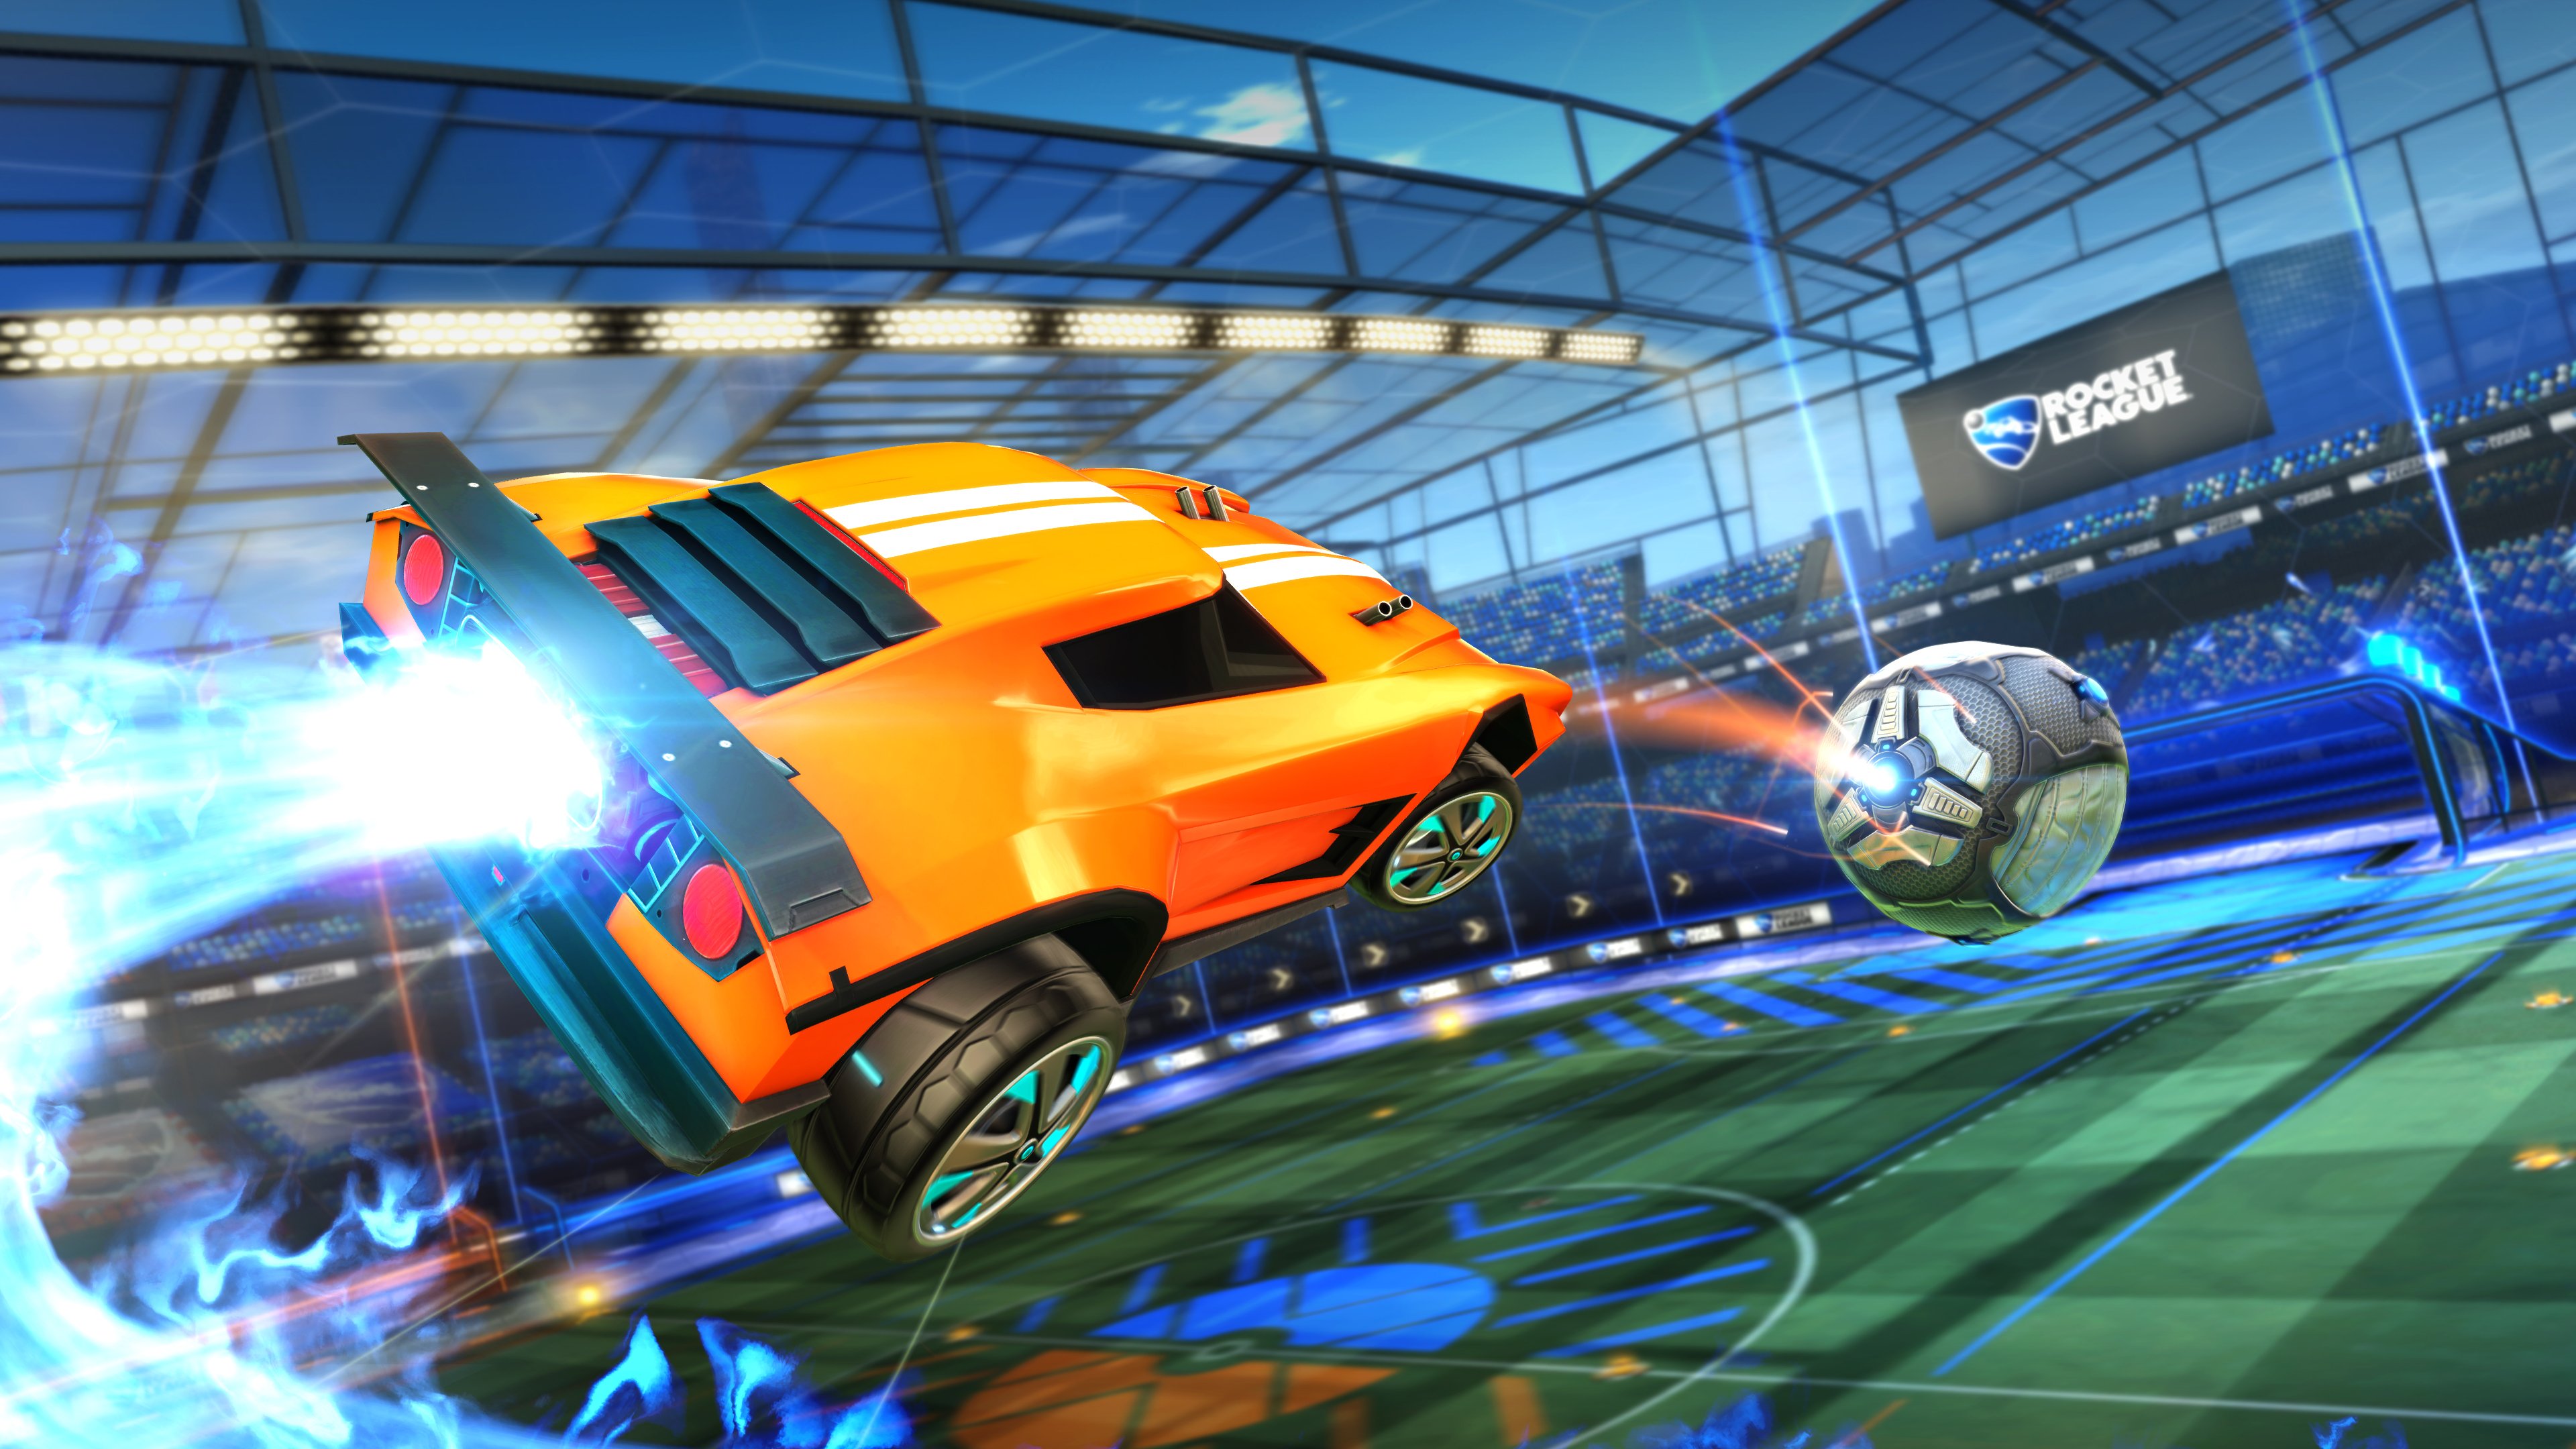 Rocket LEague autumn update